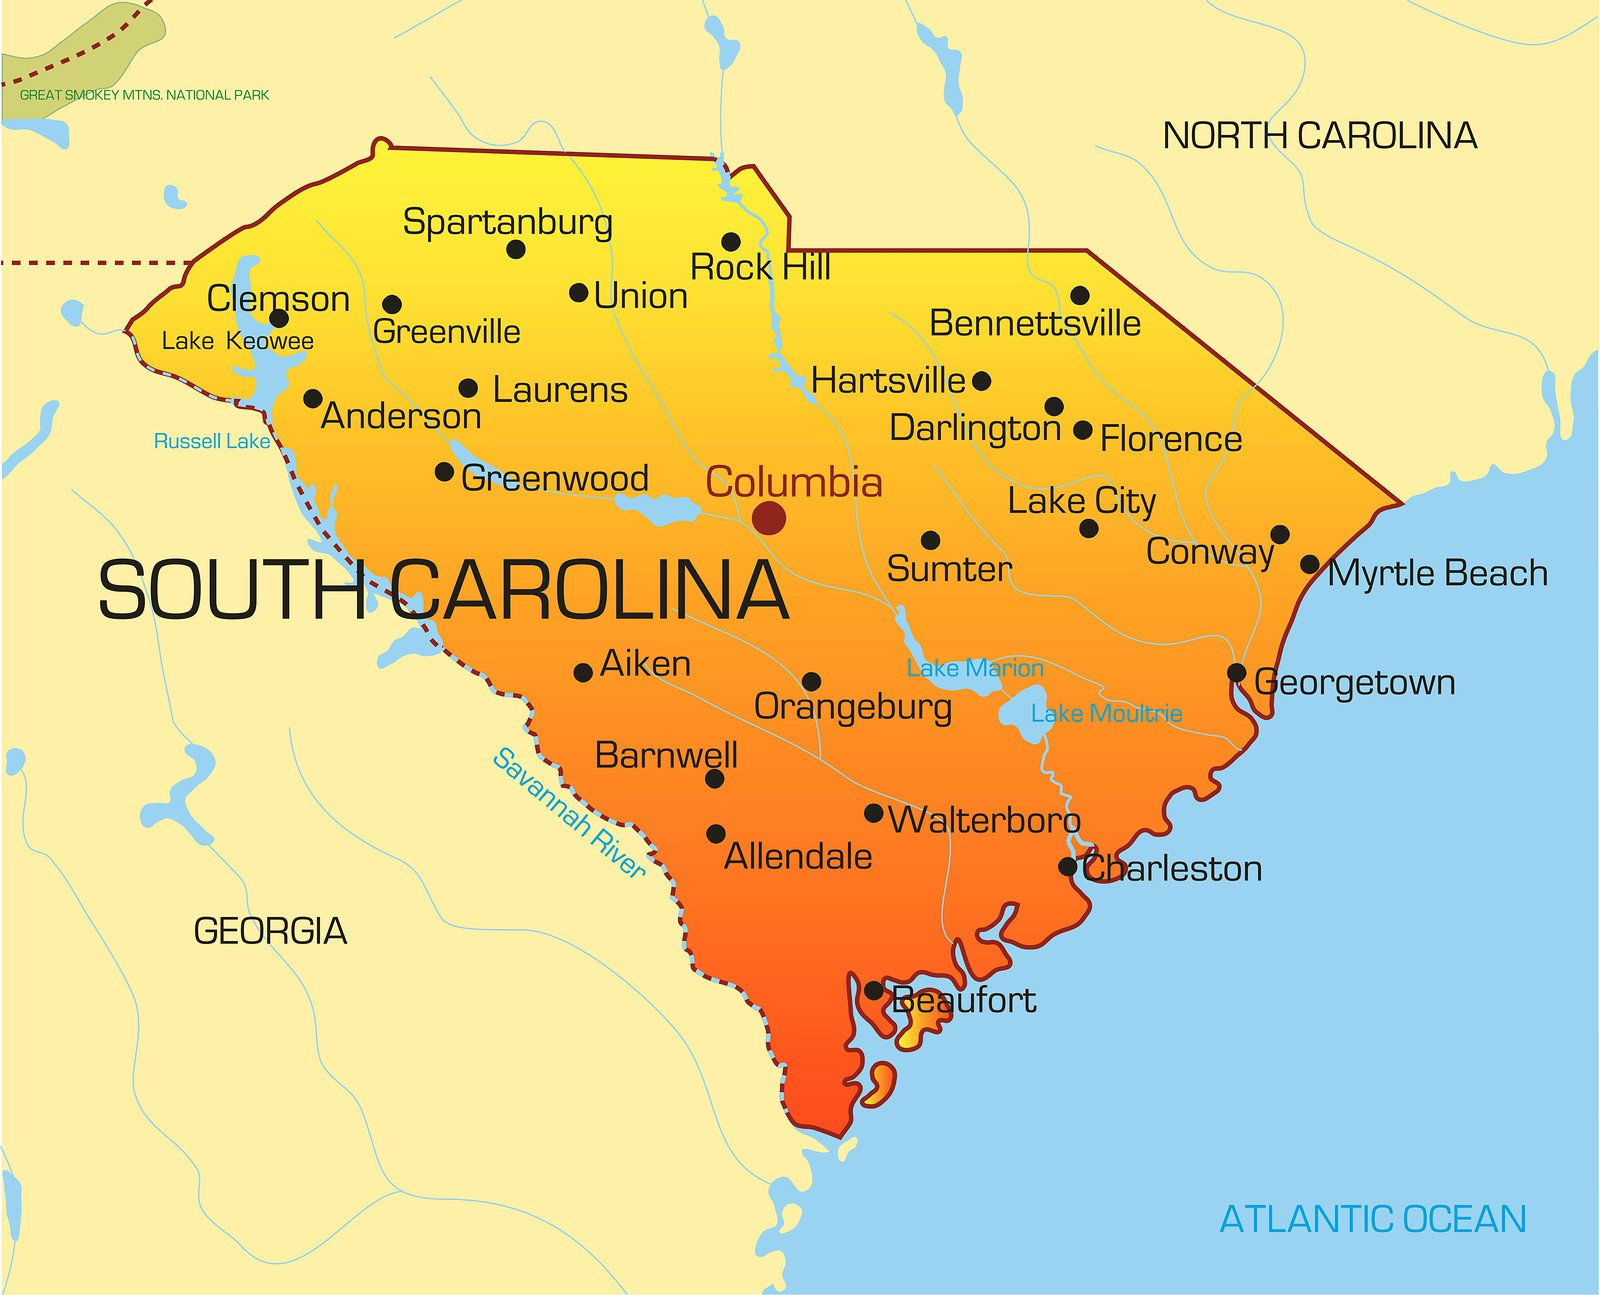 South Carolina RN Requirements and Training Programs